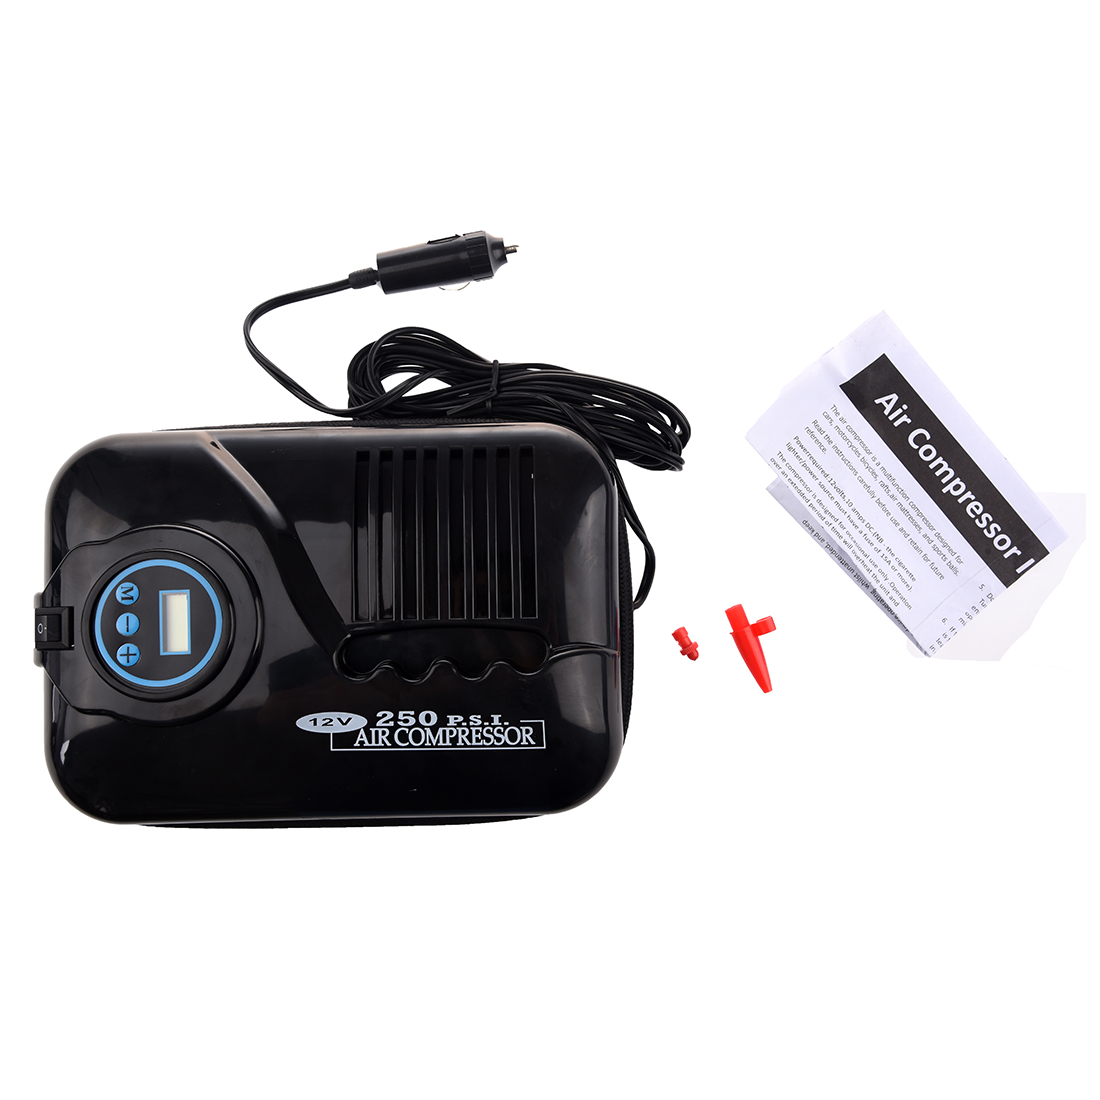 Black Digital Portable Electronic Tyre Air Compressor 12V Car Tire Inflator Digital Tyre Inflating Pump 250PSI 12v 160psi portable digital car auto tyre pump tire inflator with light electronic air compressor inflator pump